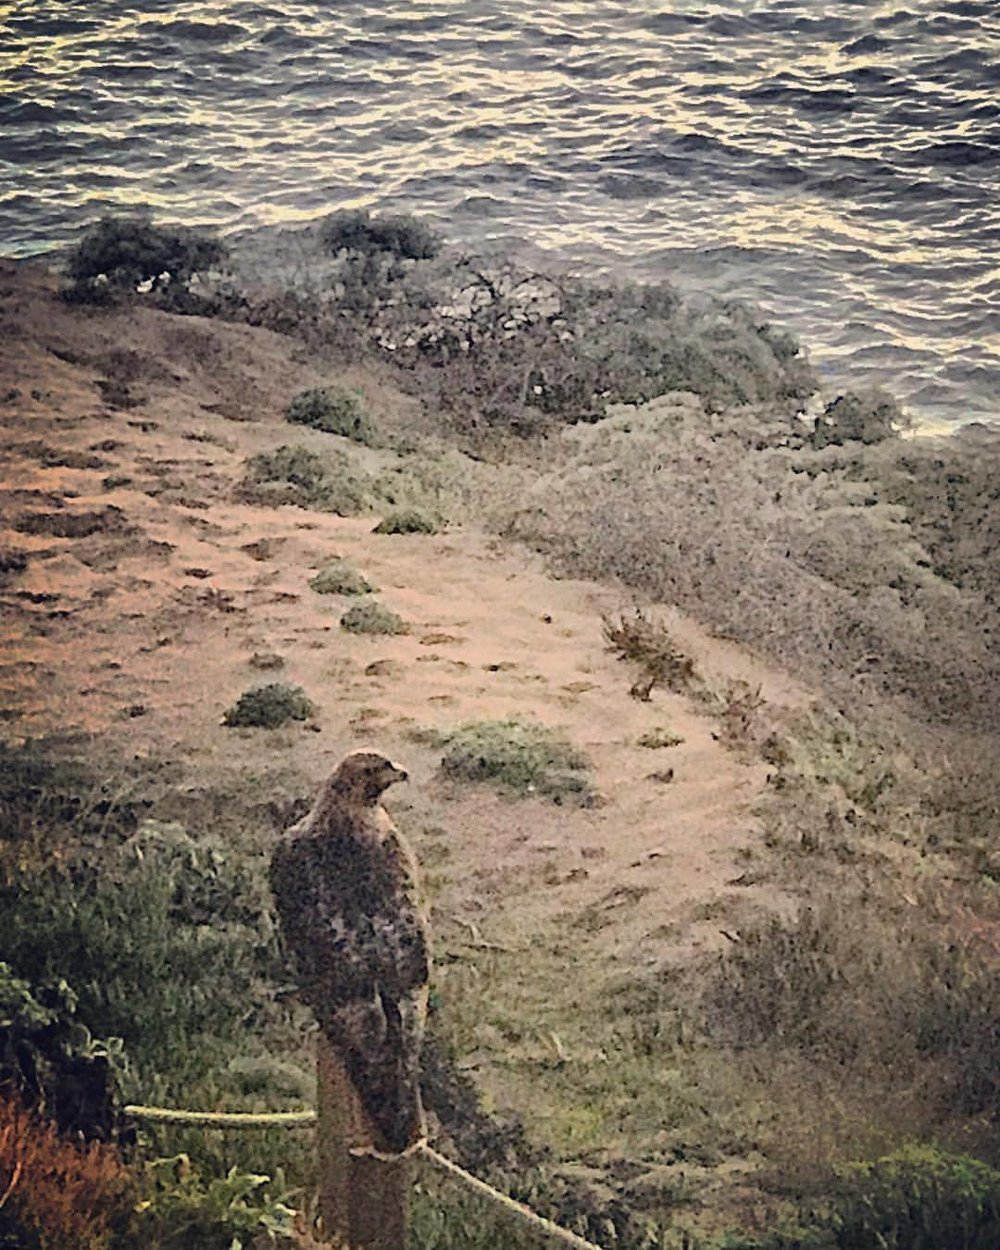 Fishing the coastline.  -  #california #ilovecalifornia #hawks #sonomacoast  (at Jenner, California)